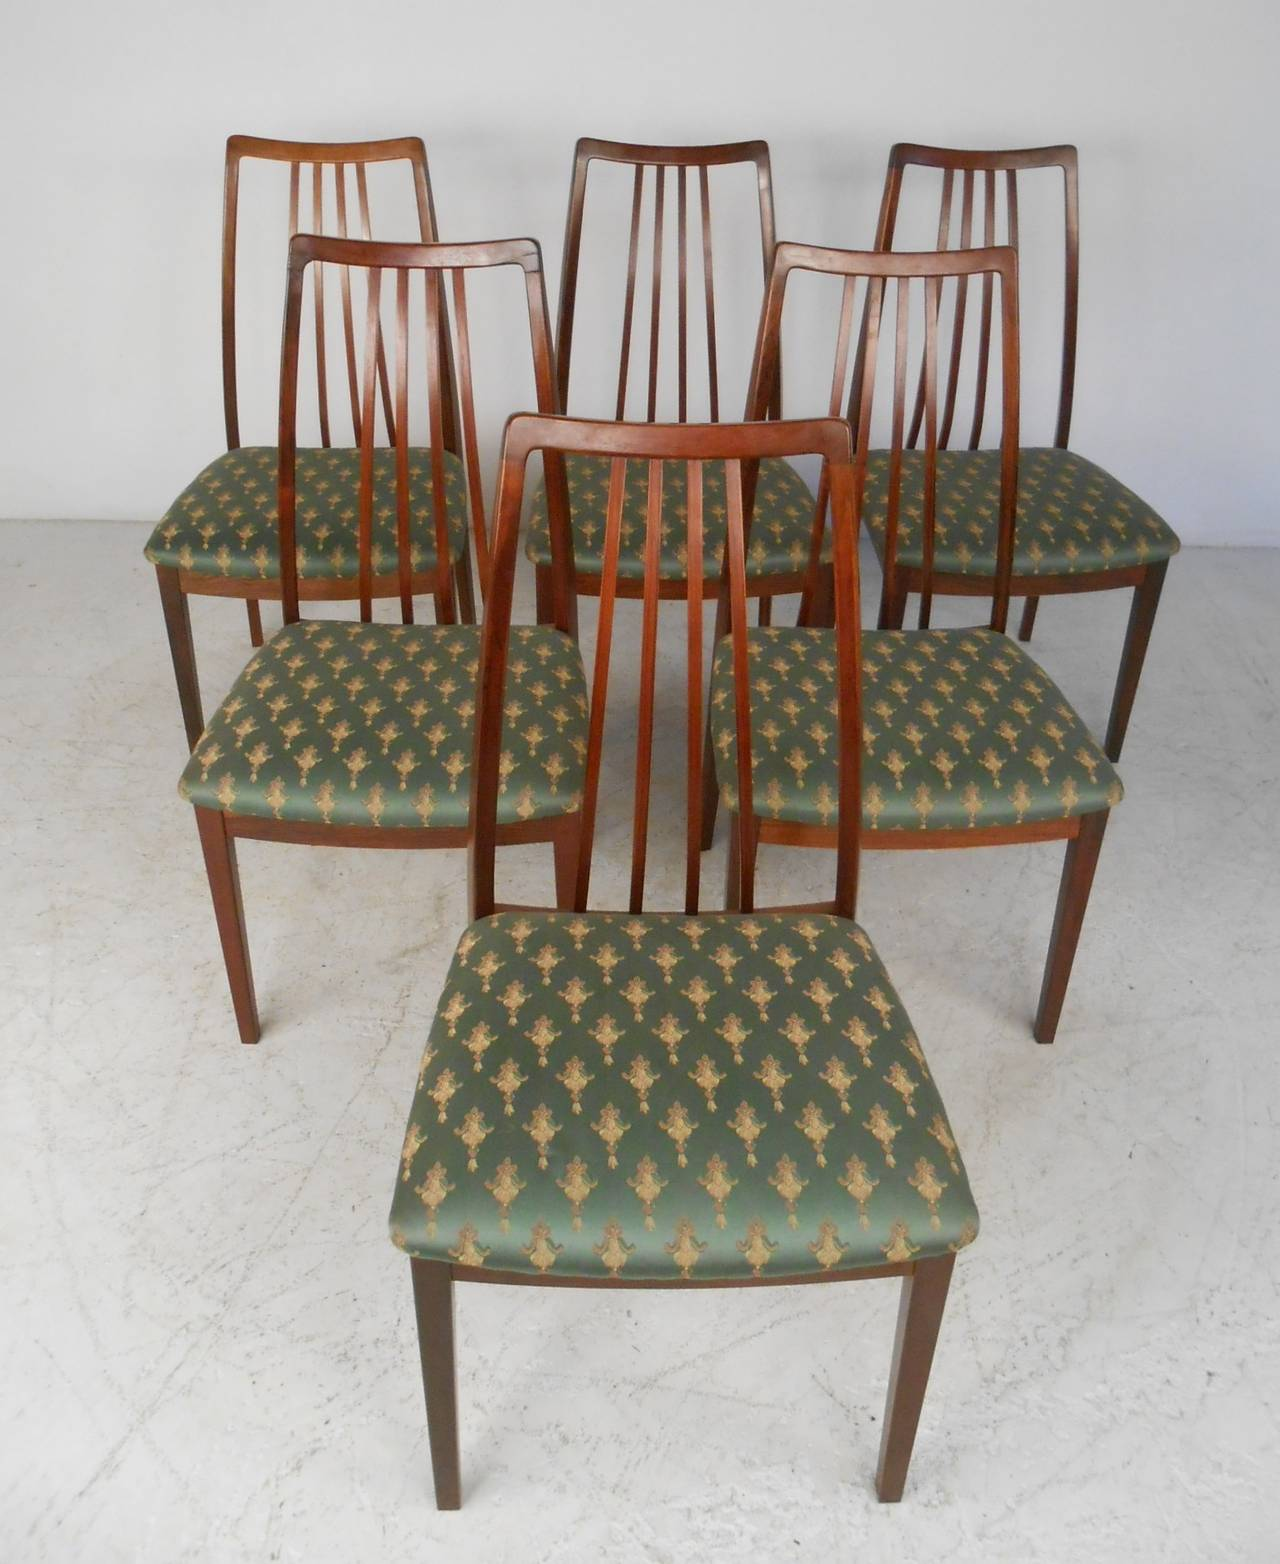 Rosewood Dining Room Set: Omann Jun Rosewood Dining Table And Chairs, C. 1959 For